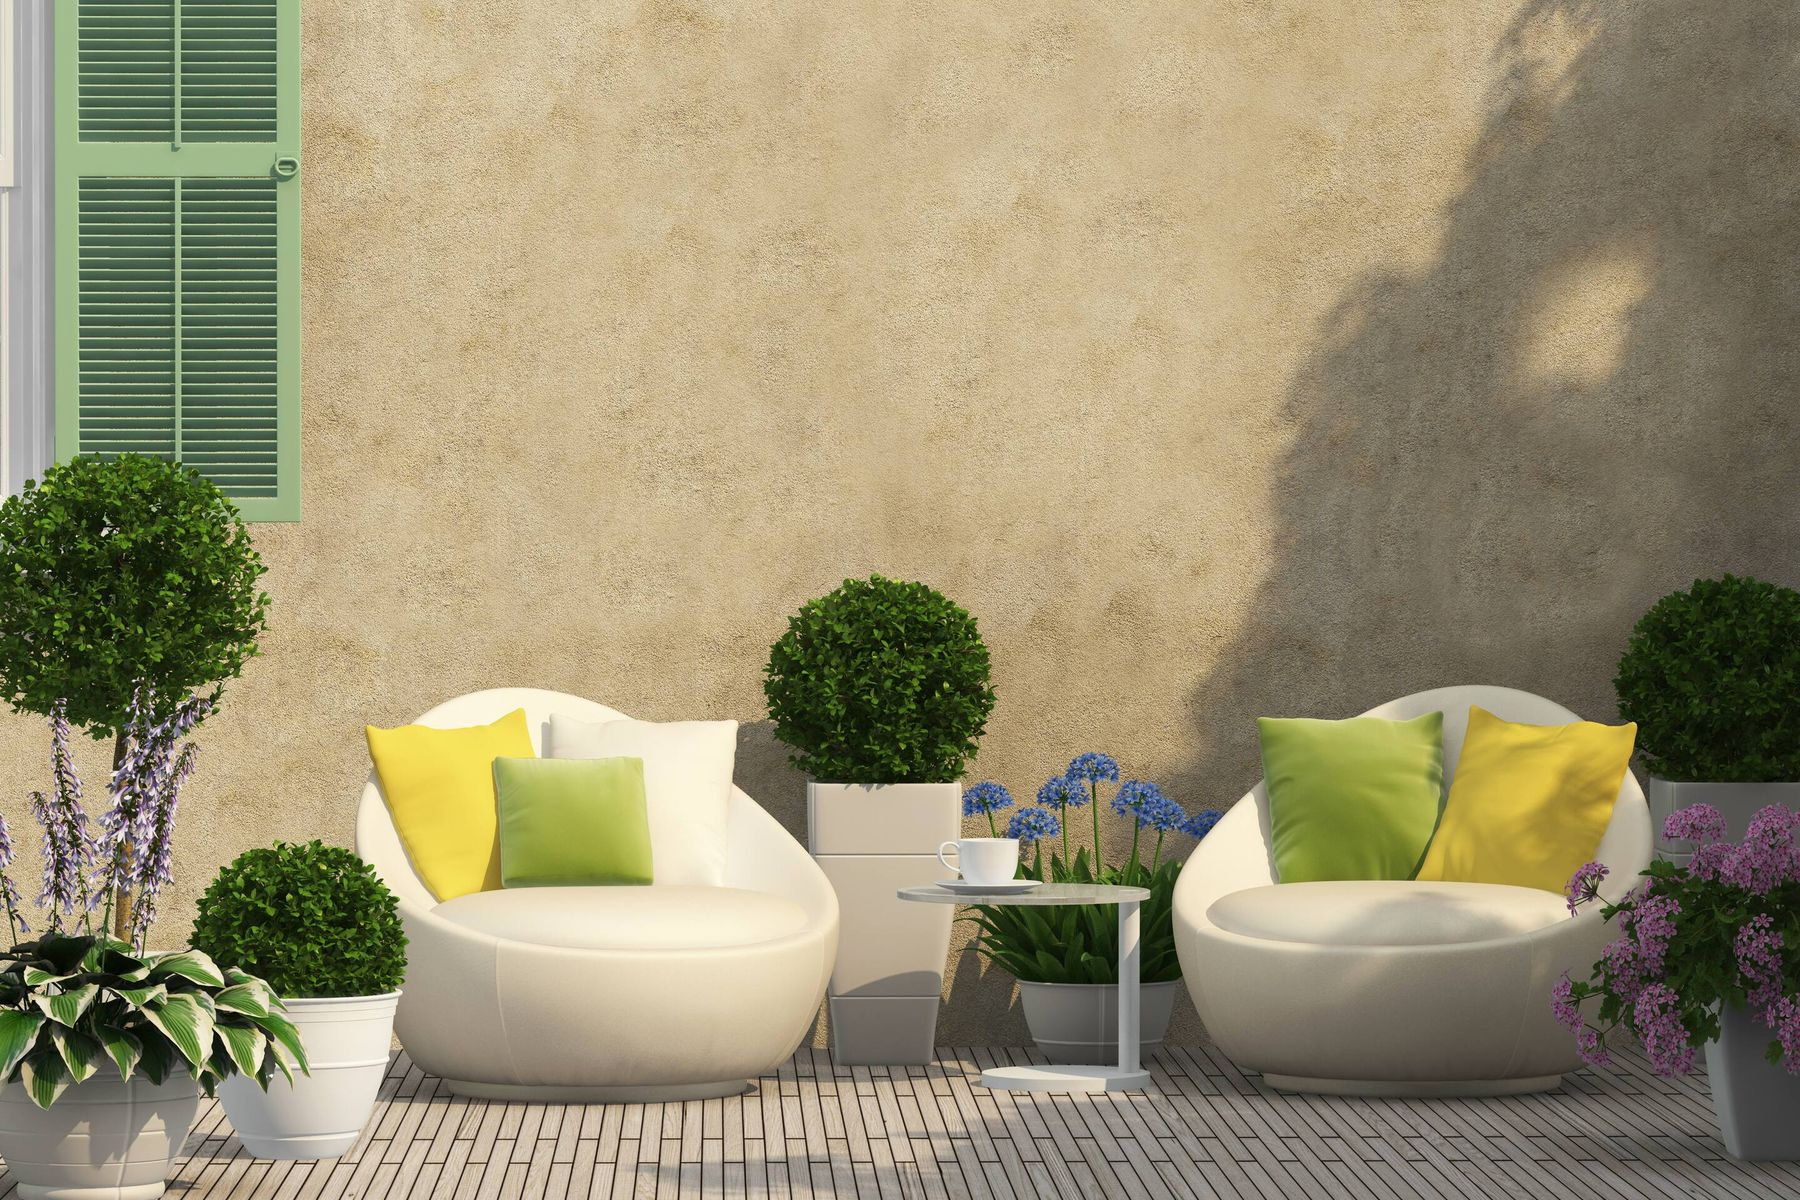 Try these Easy Maintenance Tips for your Outdoor Furniture